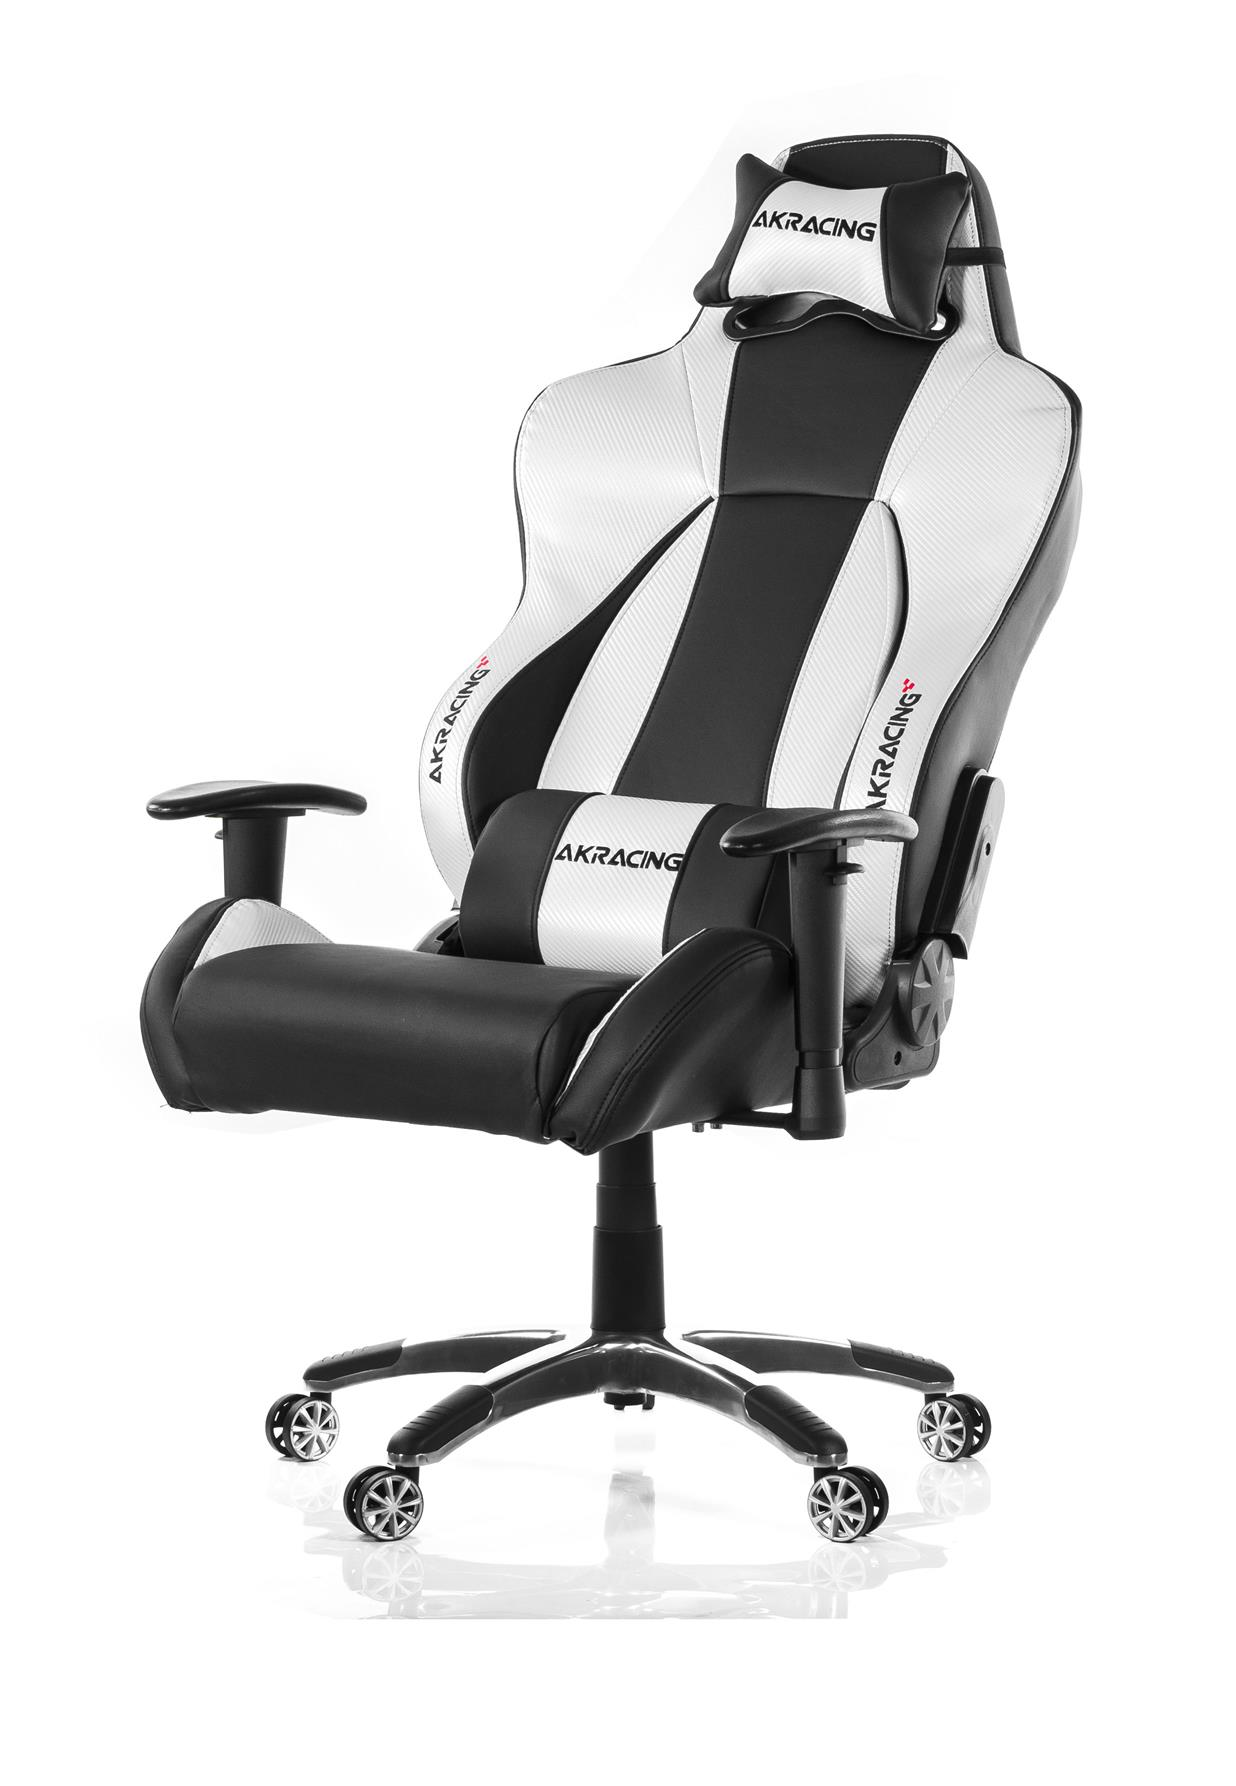 AKRACING PREMIUM STYLE GAMING CHAIR BLACK SILVER V2 PU LEATHER INSTOCK